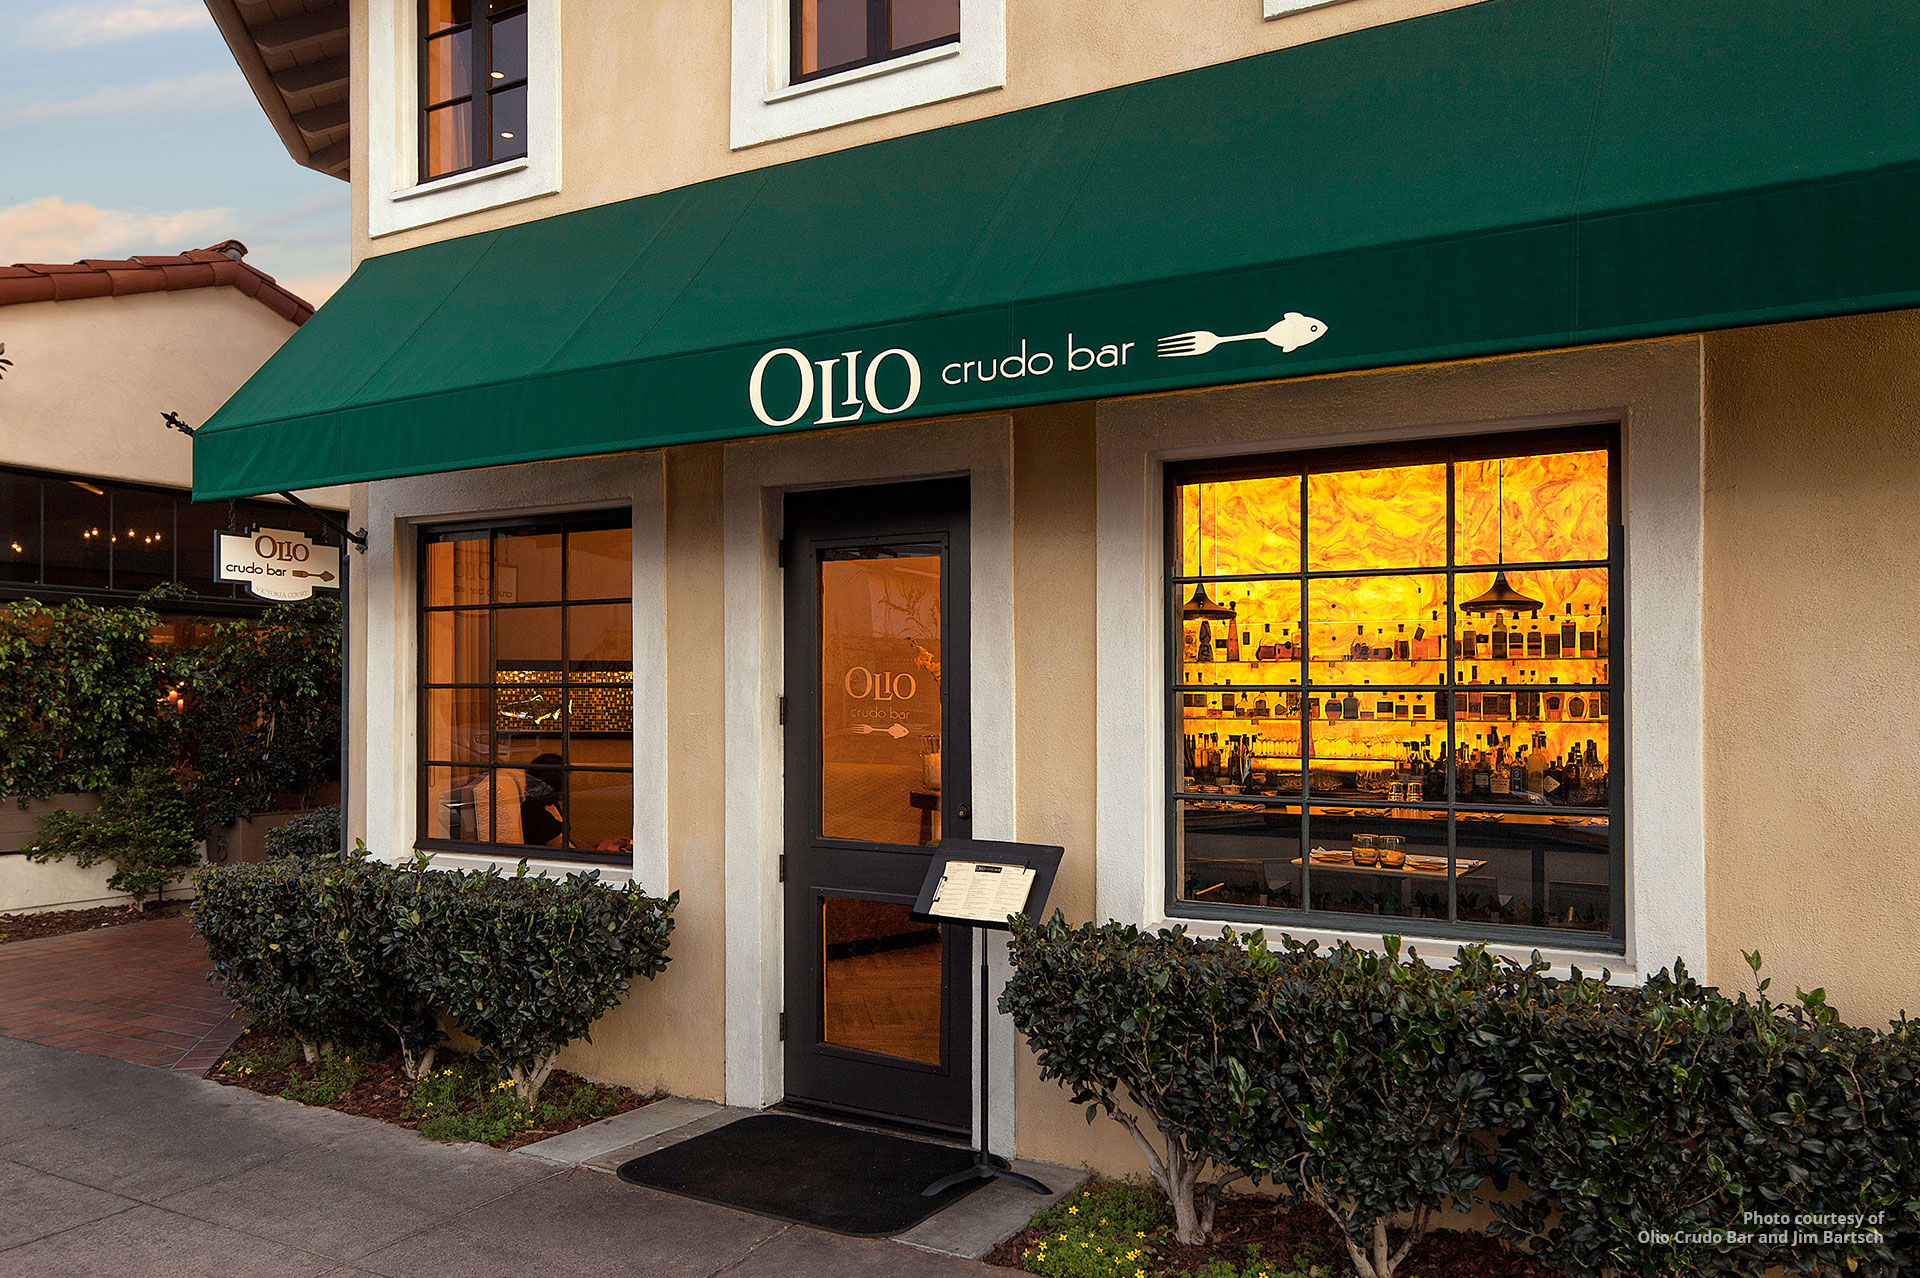 new styles quite nice new images of Olio e Limone Ristorante and Olio Crudo Bar - Santa Barbara ...